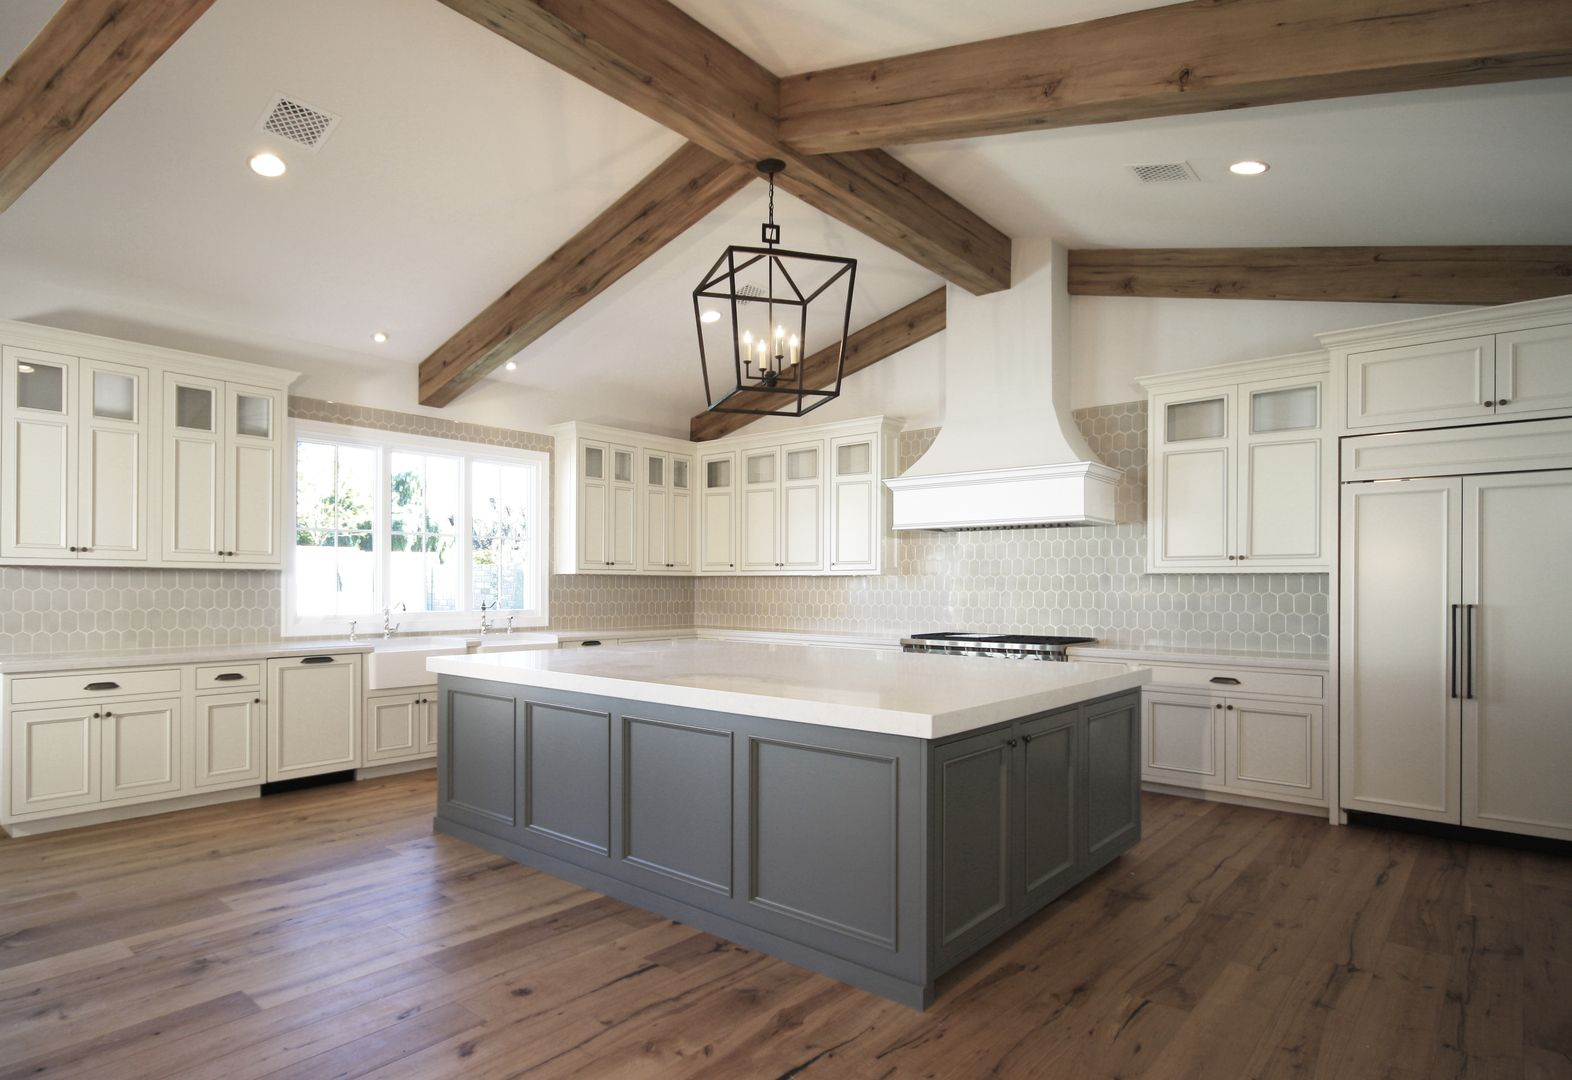 Large Kitchen Island With Vaulted Exposed Beams Ceiling Kitchens